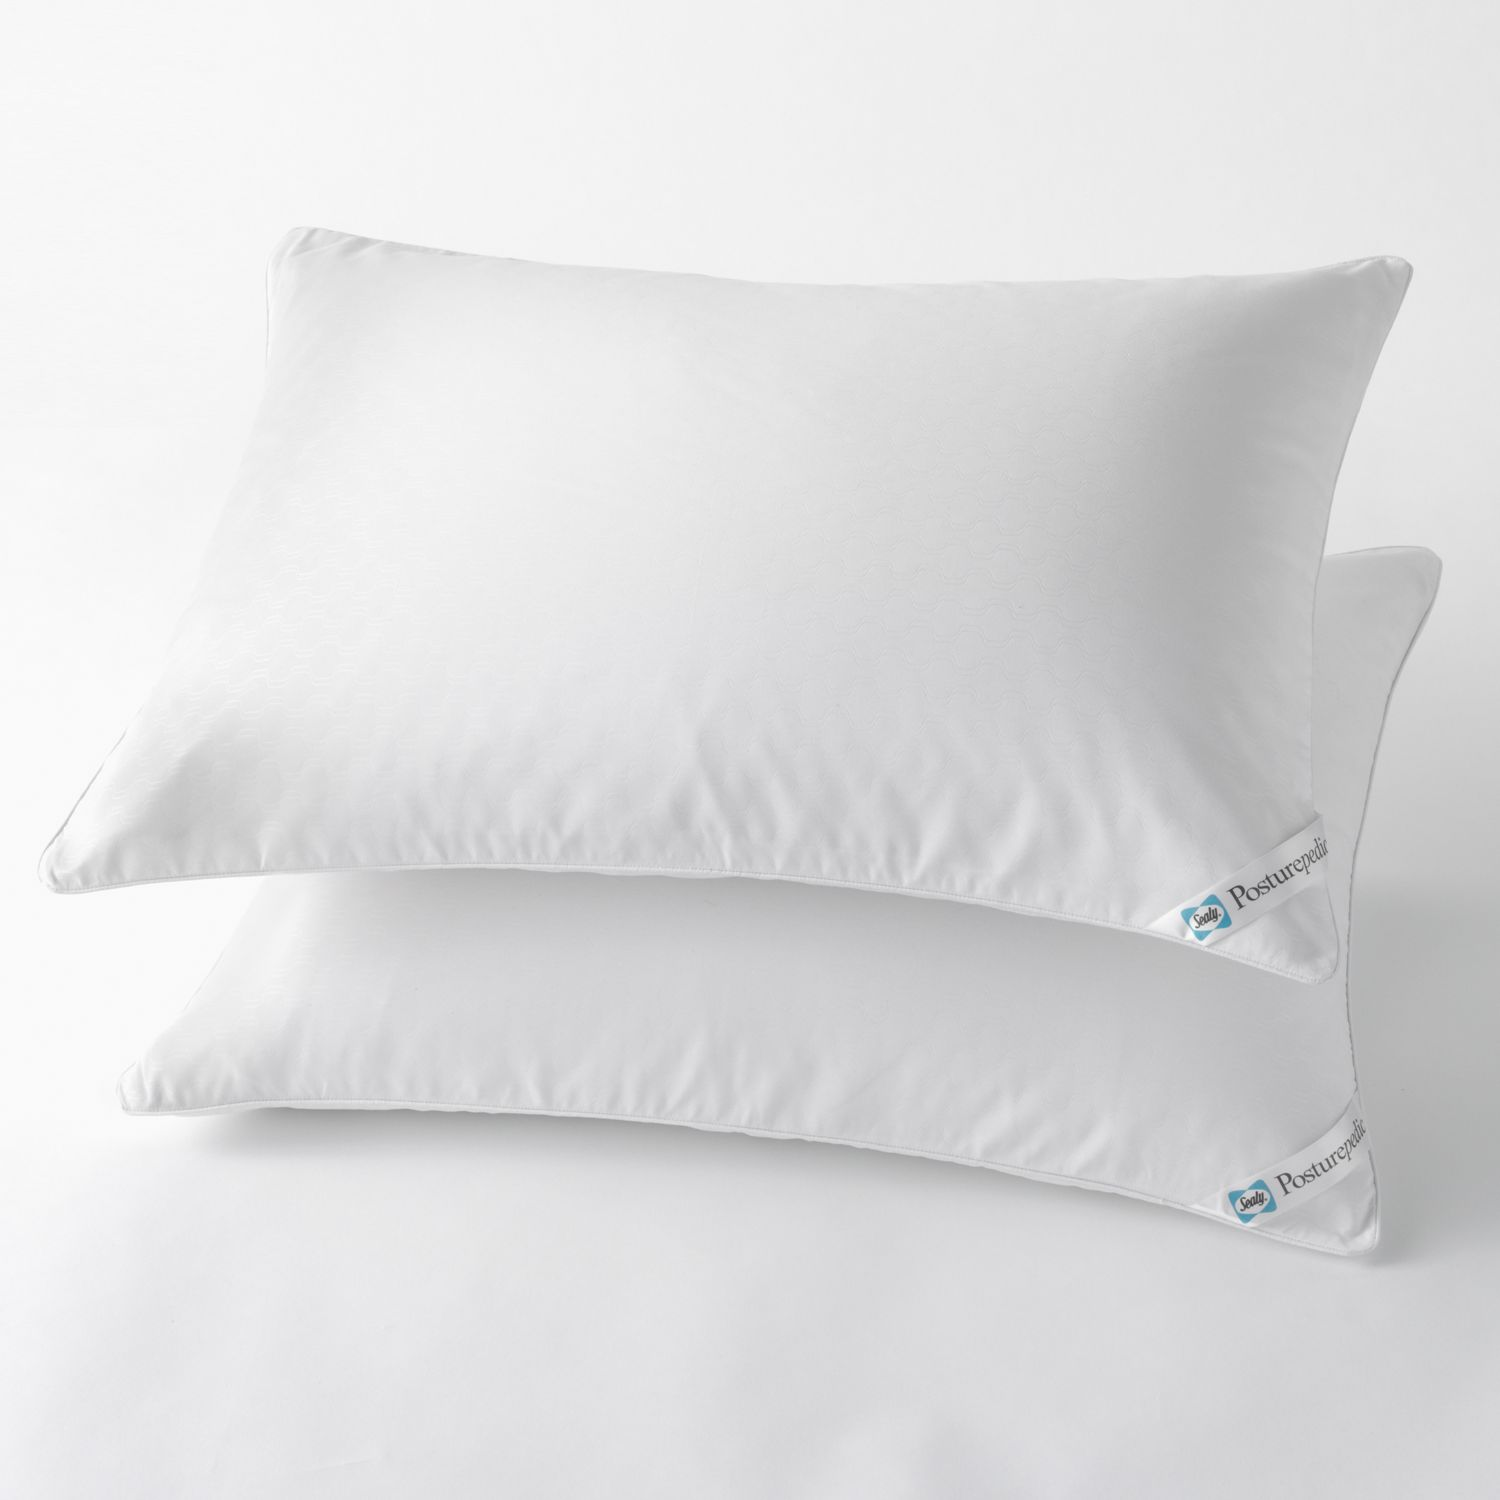 sealy allergy protection 2pk pillow protectors